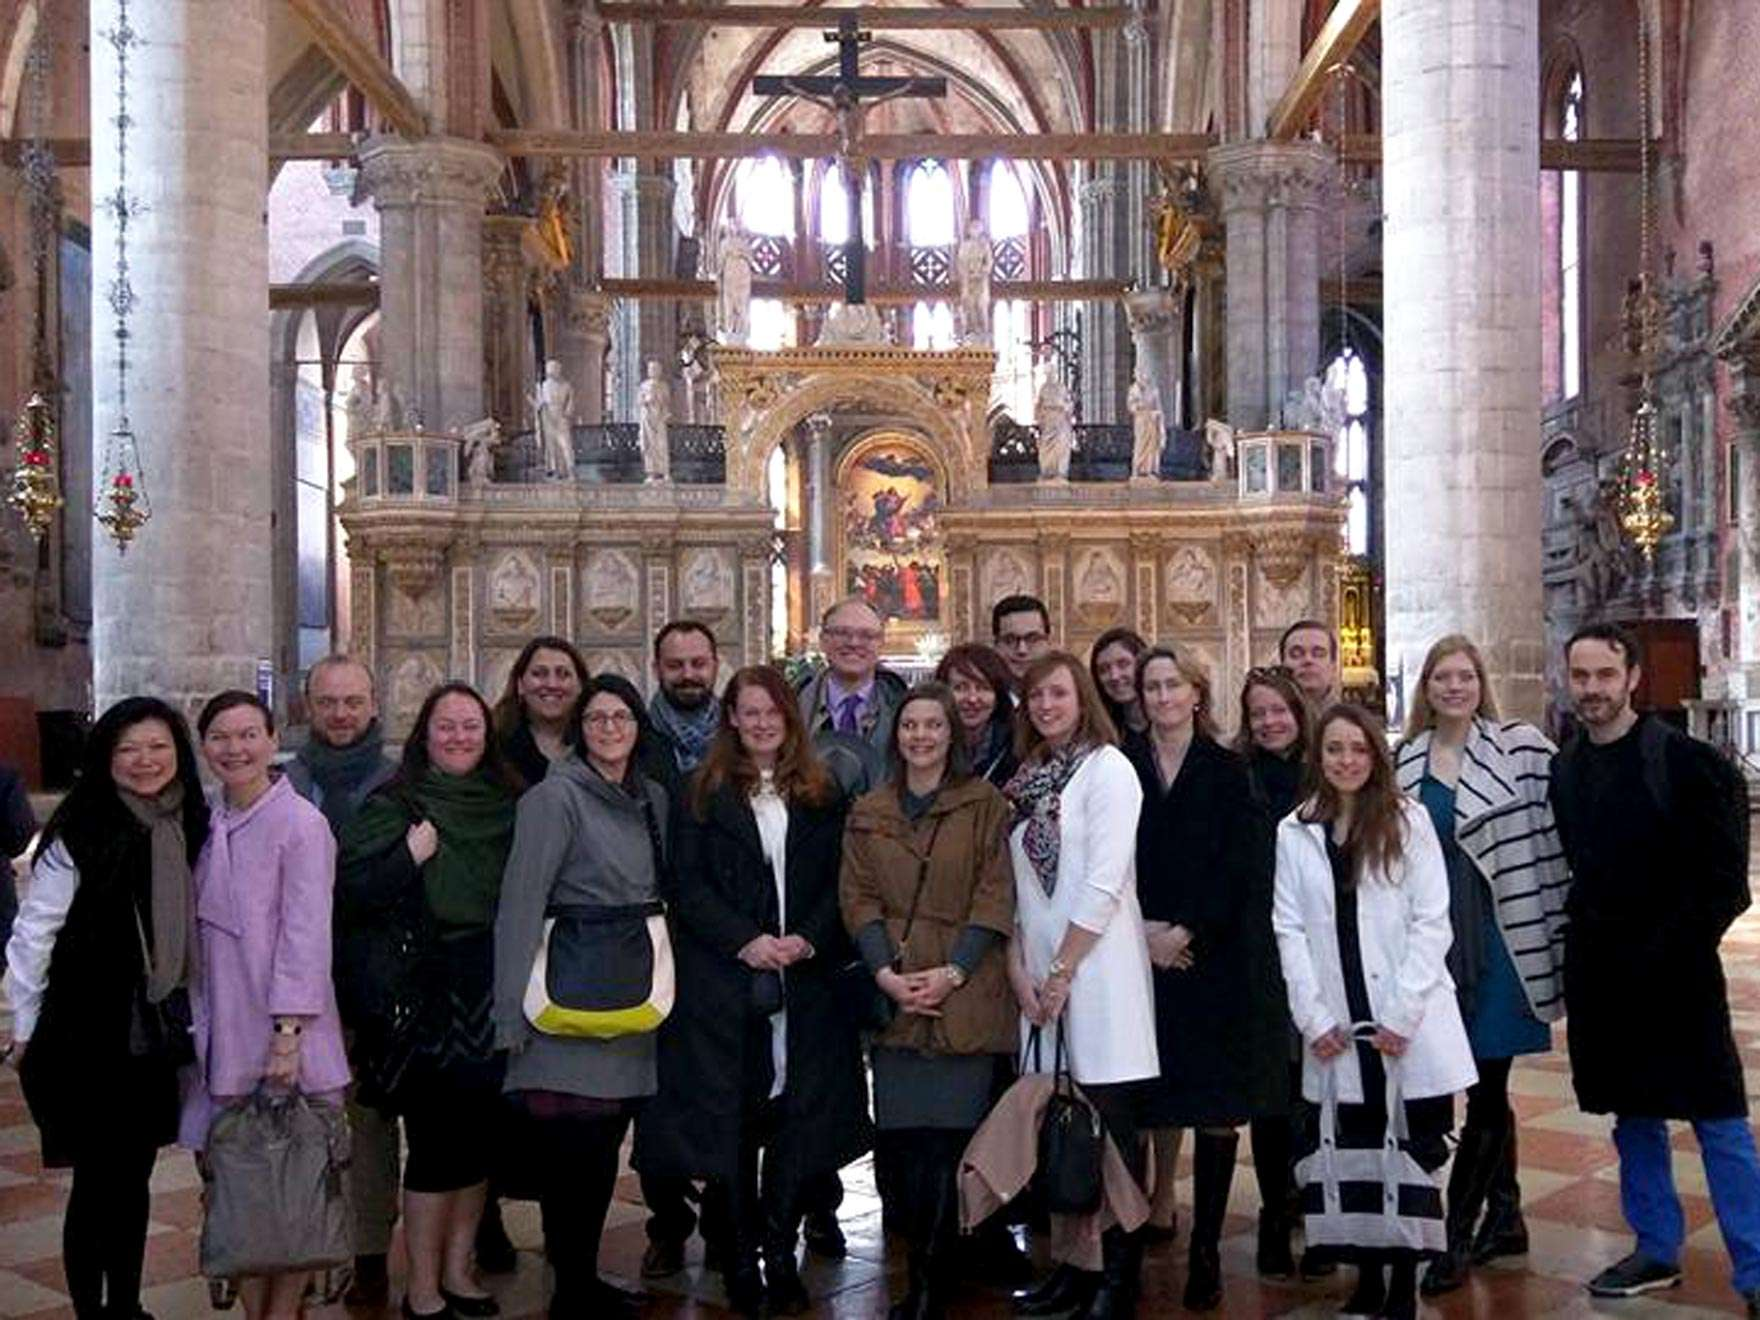 Museum Council patrons pose in front of church altar in Venice